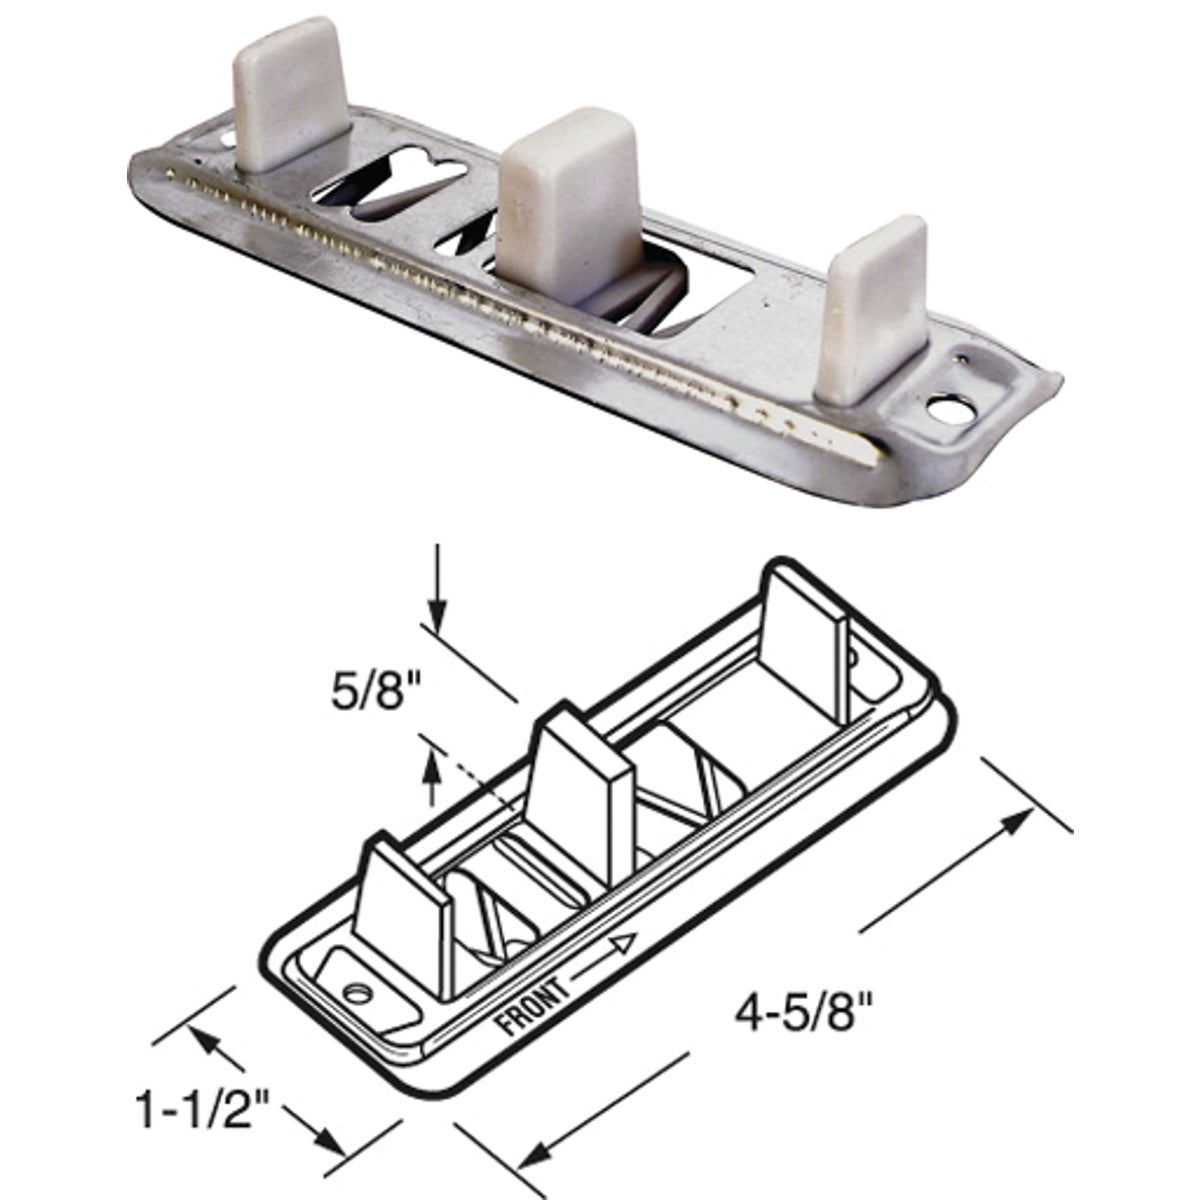 ADJUSTABLE FLOOR GUIDE - 16217 by Prime Line Products